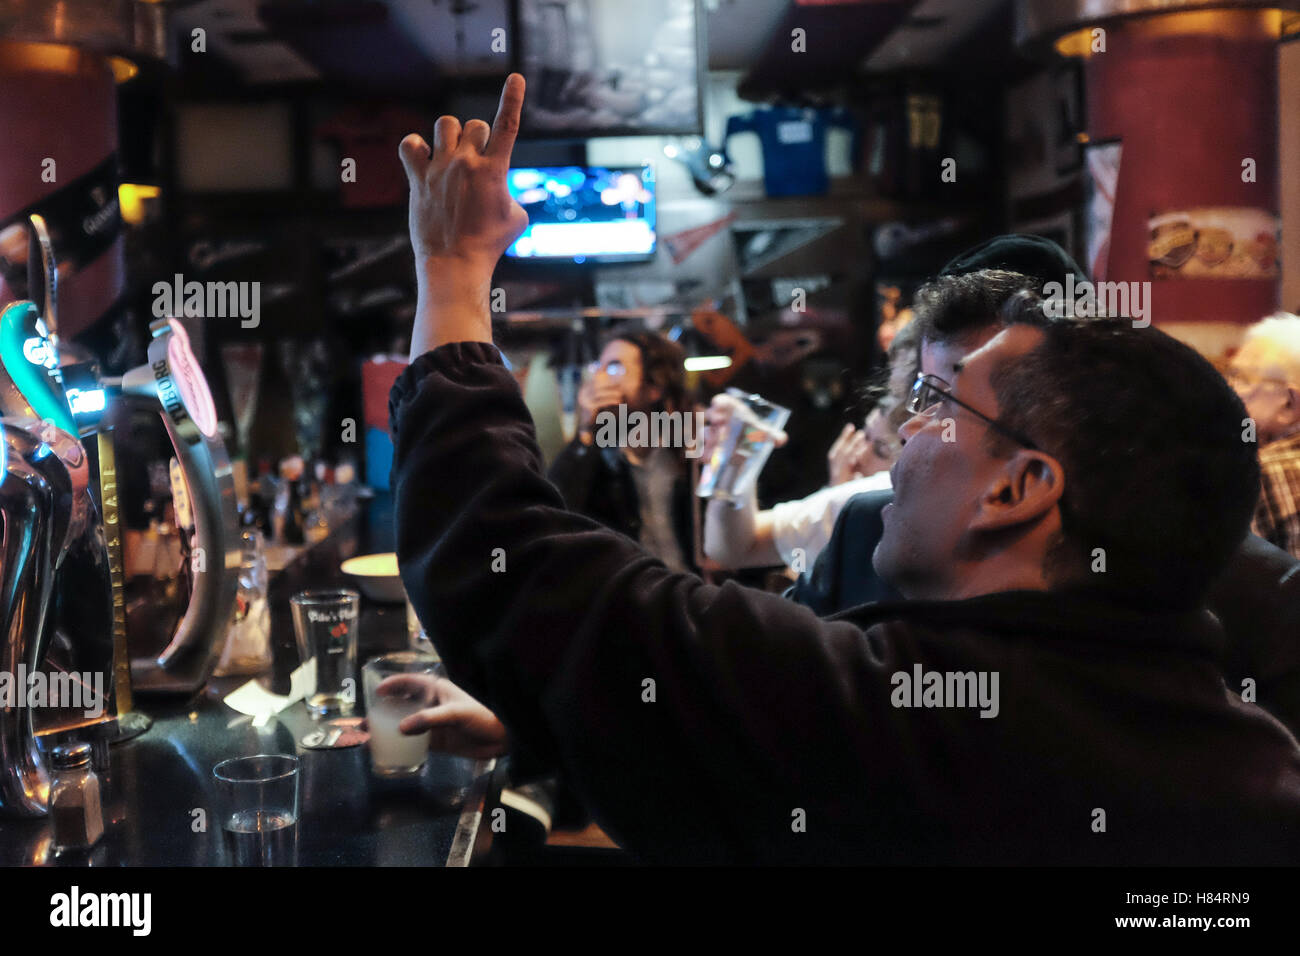 Jerusalem, Israel. 9th November, 2016. Israeli Americans watch and react to the unfolding drama of the 2016 US Elections - Stock Image